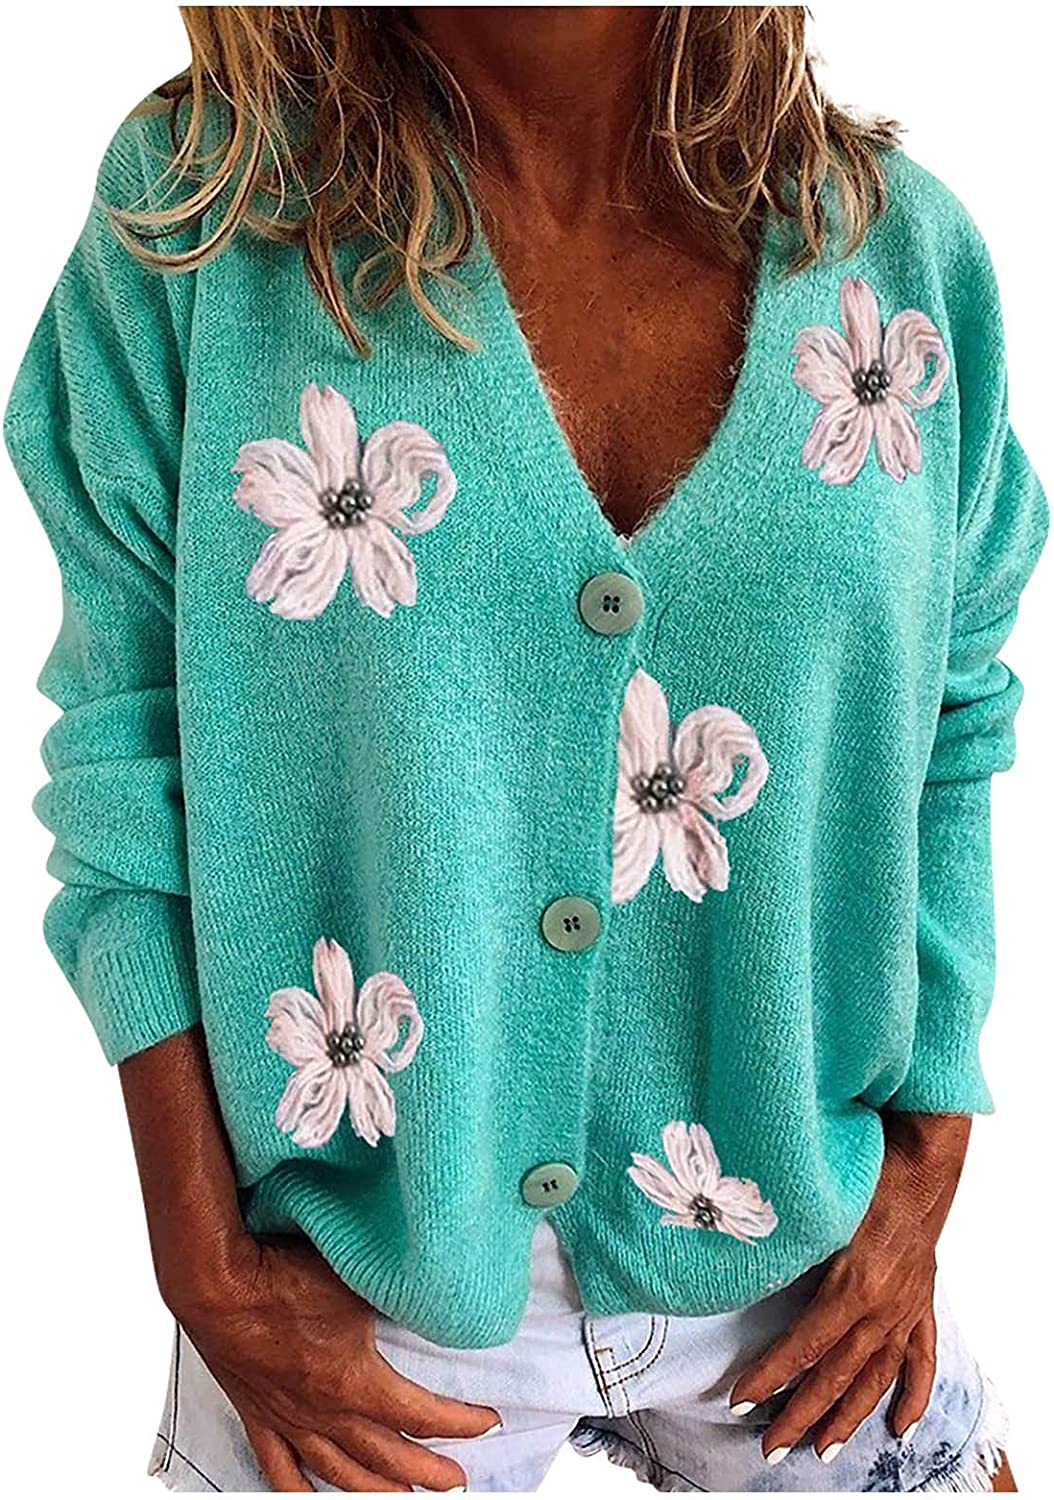 Women's Retro Embroidered Knit Long Sleeve Single-Breasted V-Neck Sweater Loose Casual Warm Cardigan